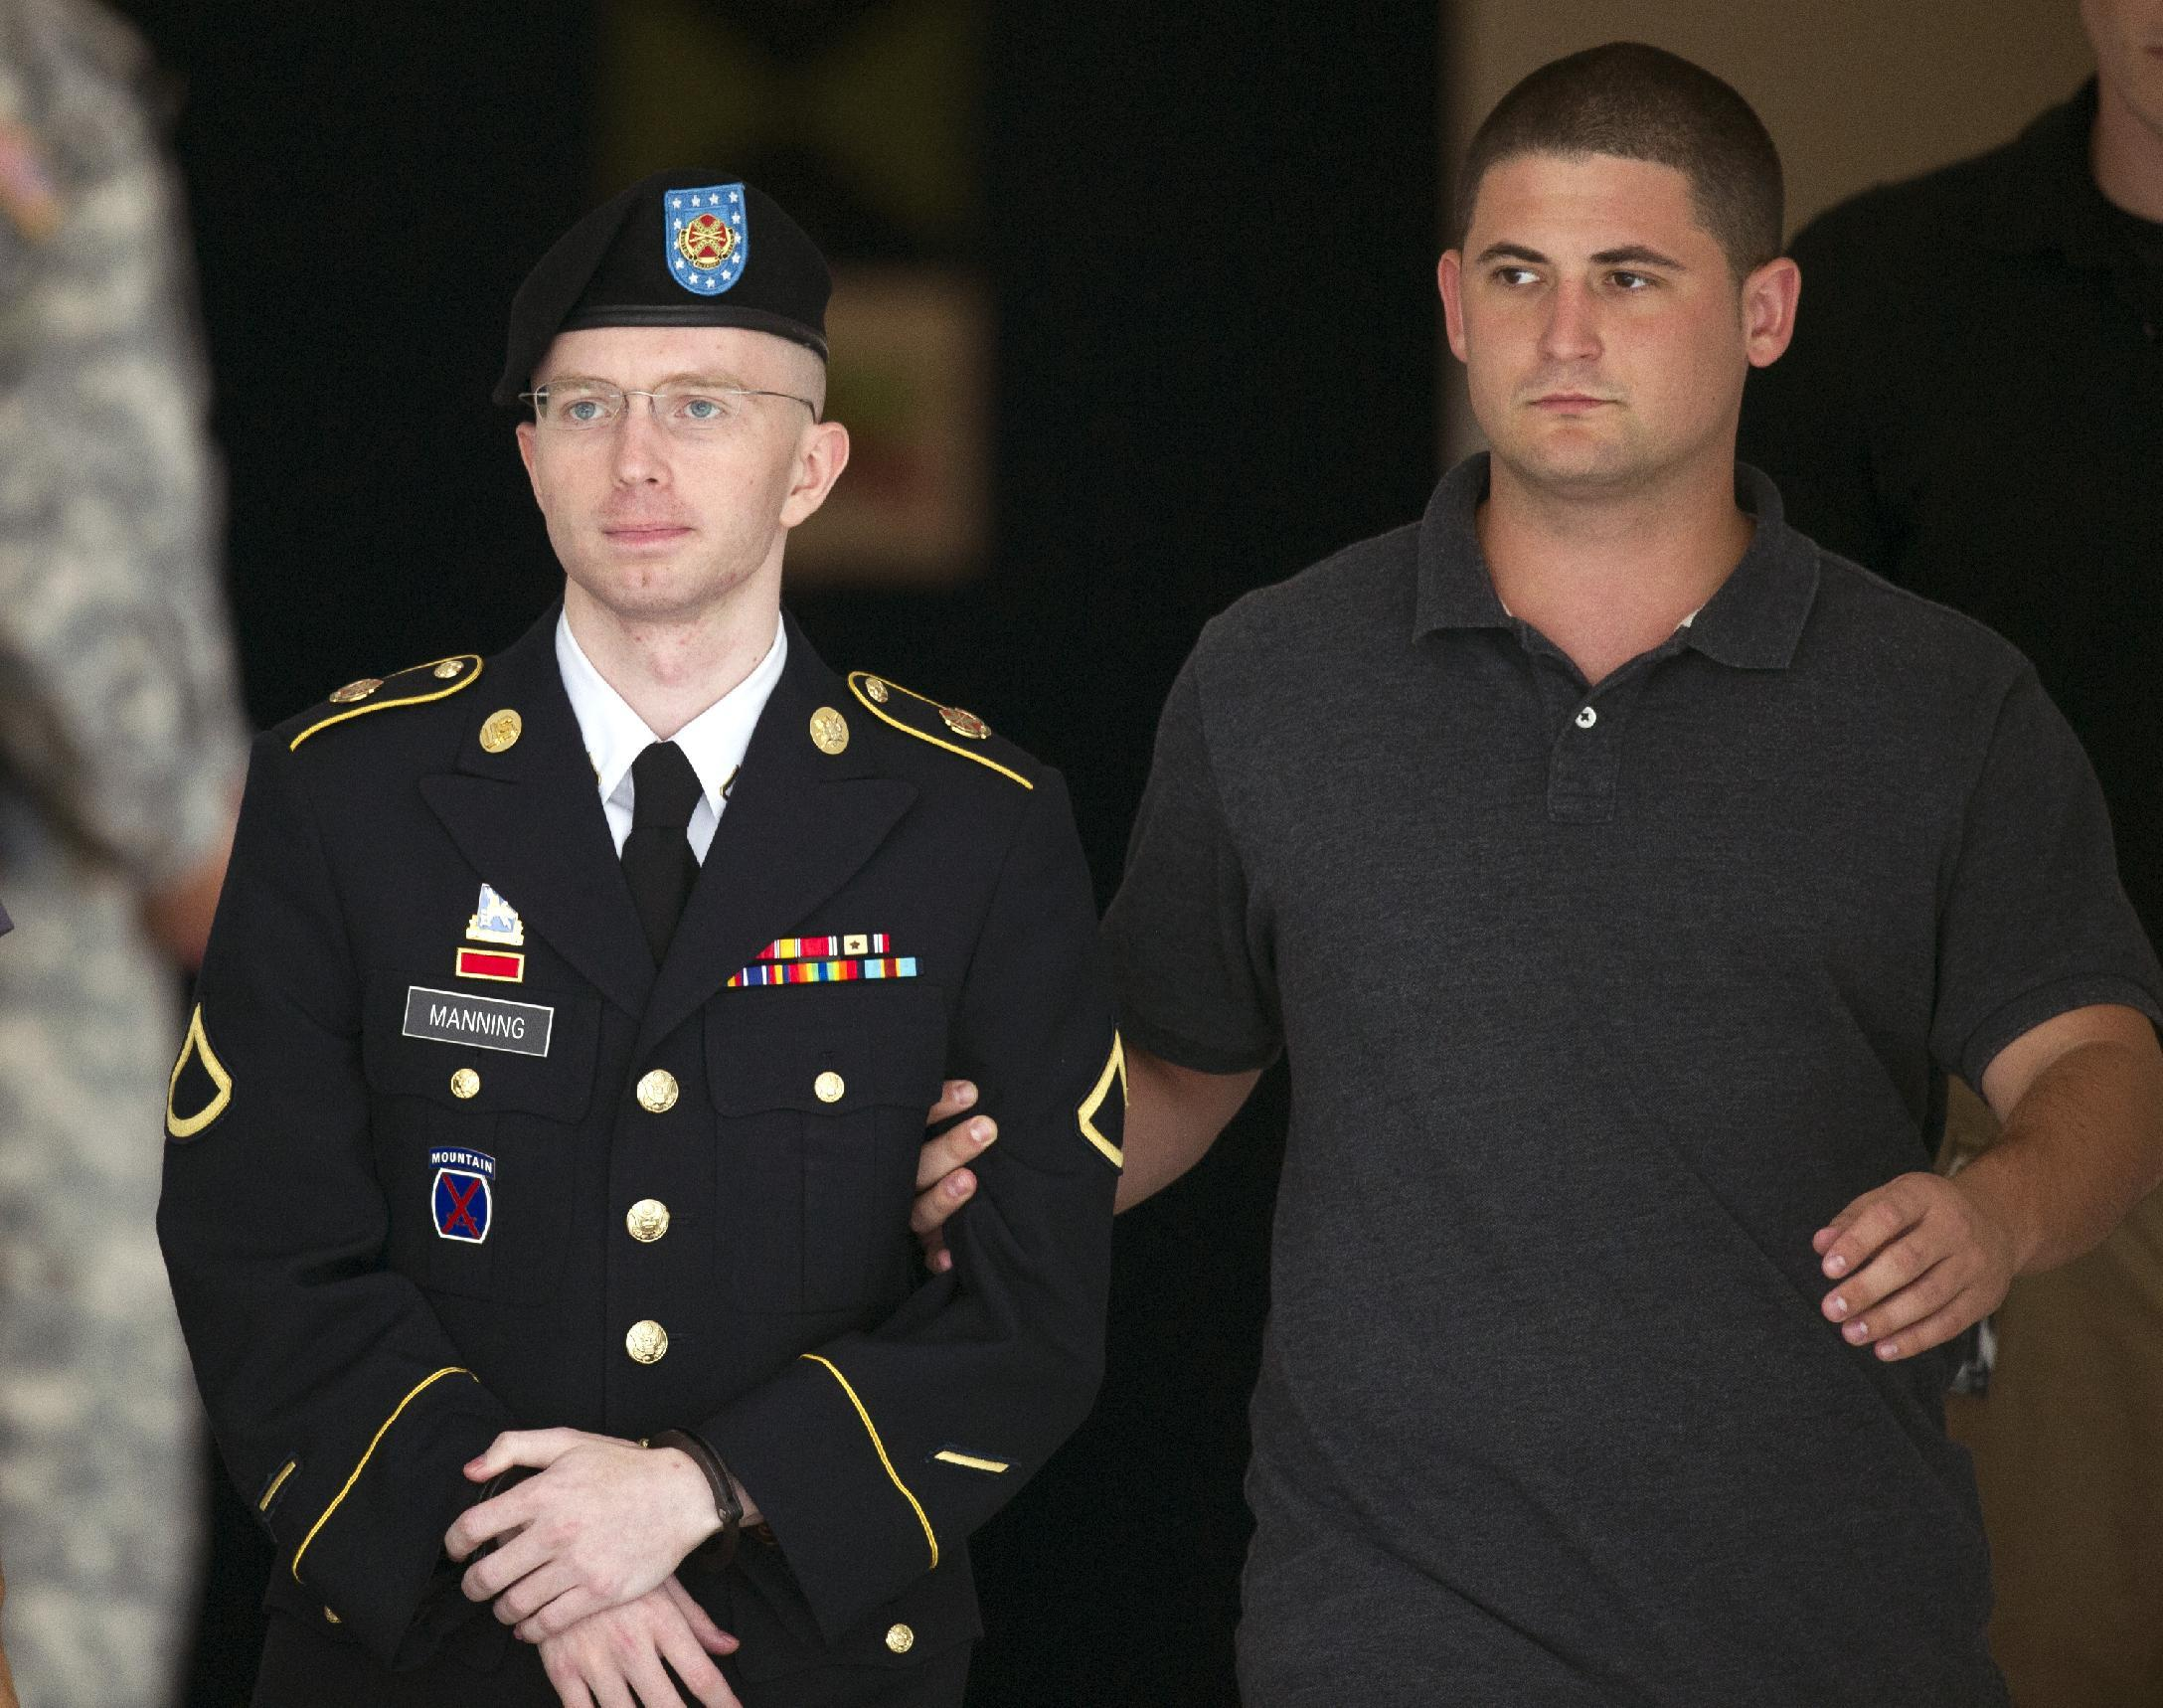 Army Pfc. Bradley Manning is escorted out of a courthouse at Fort Mead, Md, Thursday, July 25, 2013. Manning is charged with indirectly aiding the enemy by sending troves of classified material to WikiLeaks. He faces up to life in prison. (AP Photo/Cliff Owen)